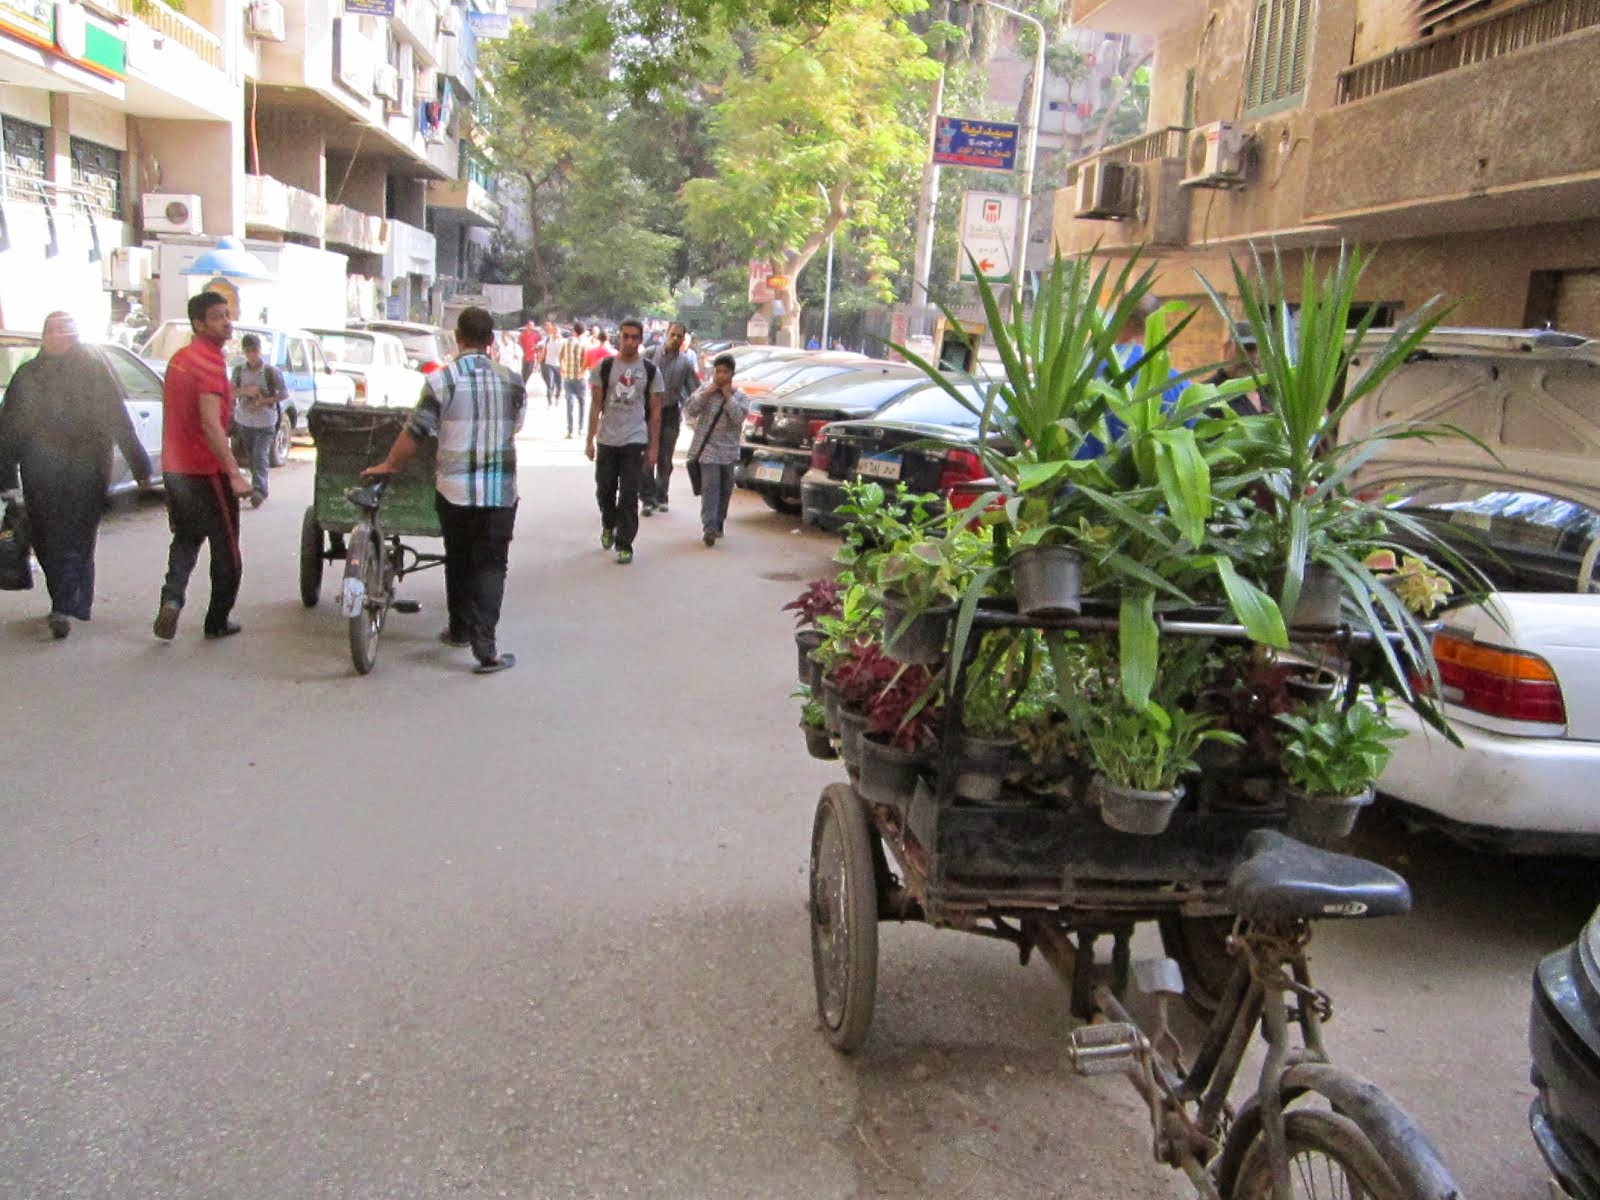 Sustainable Transport for Plants in Cairo!